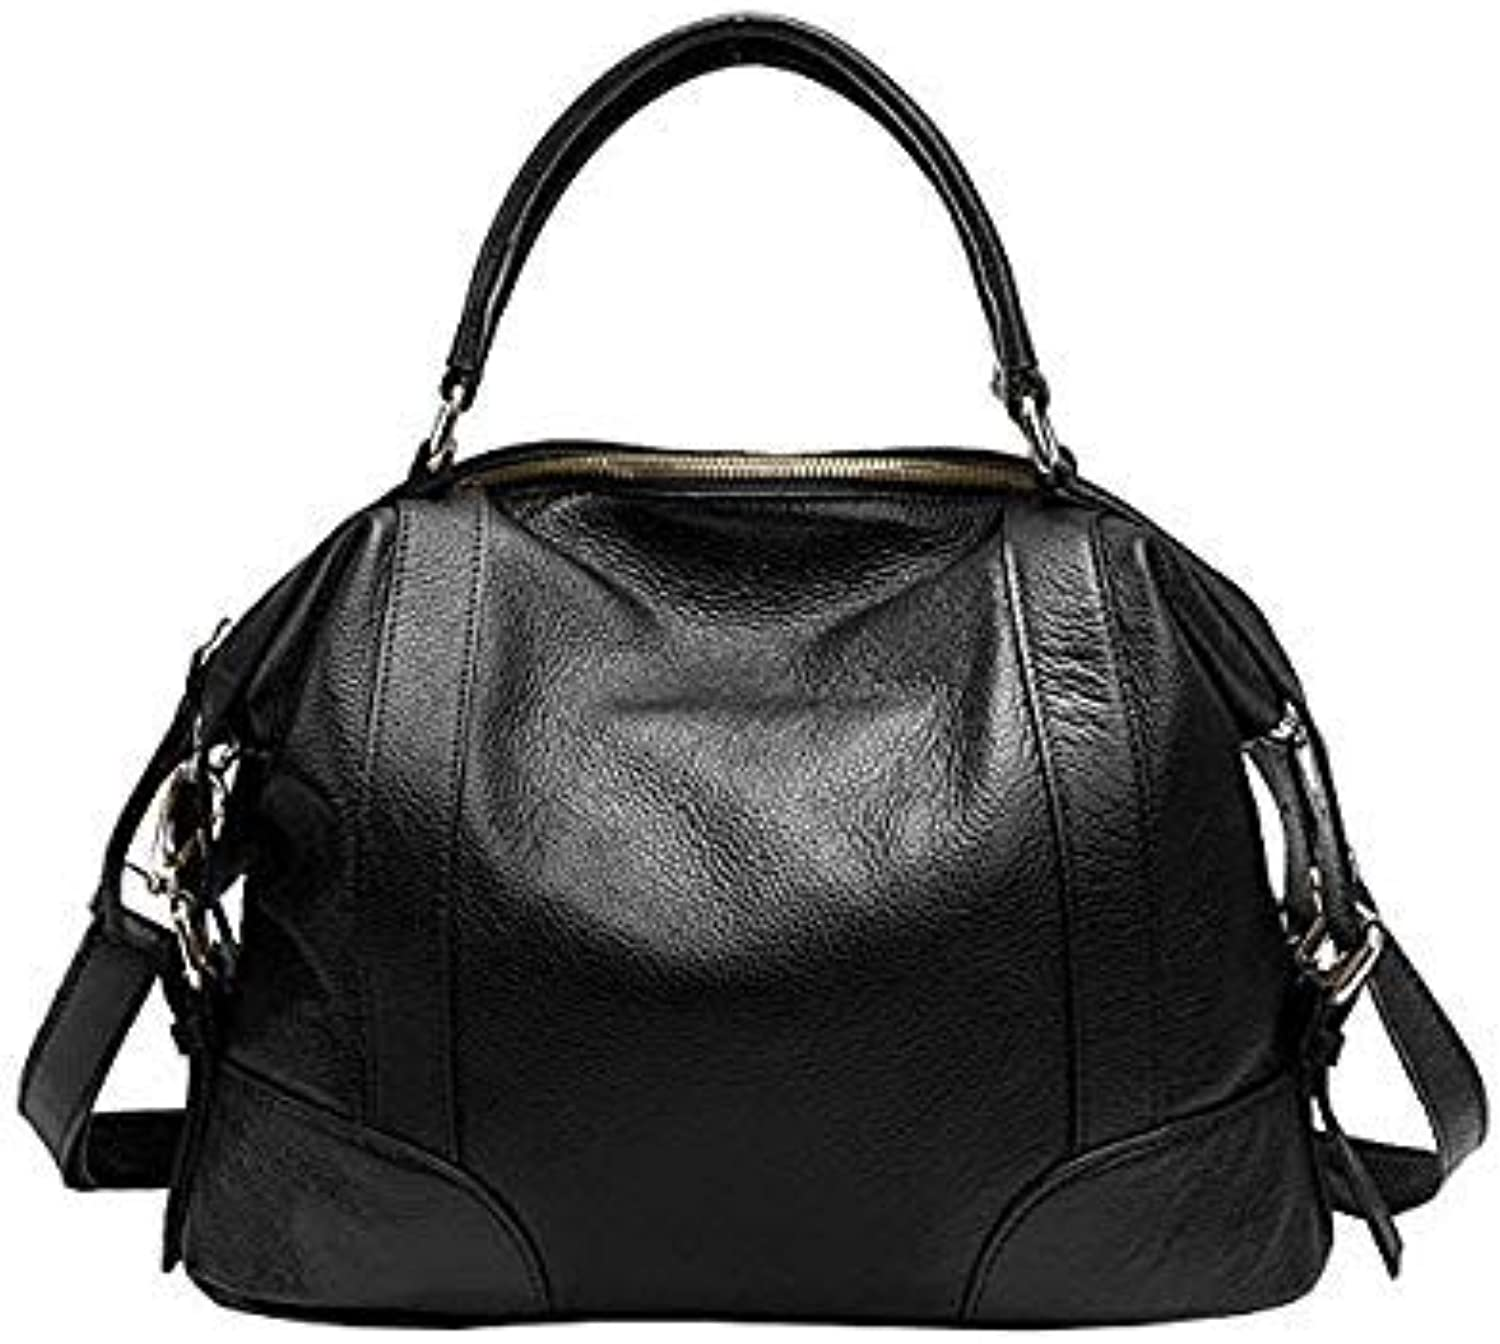 Bloomerang Guarantee Genuine Leather Bags Handbag Women Messenger Bag Brand Luxury Ladies Natural Cow Leather Crossbody Bags Tote color Black 32 x 13 x 23 cm